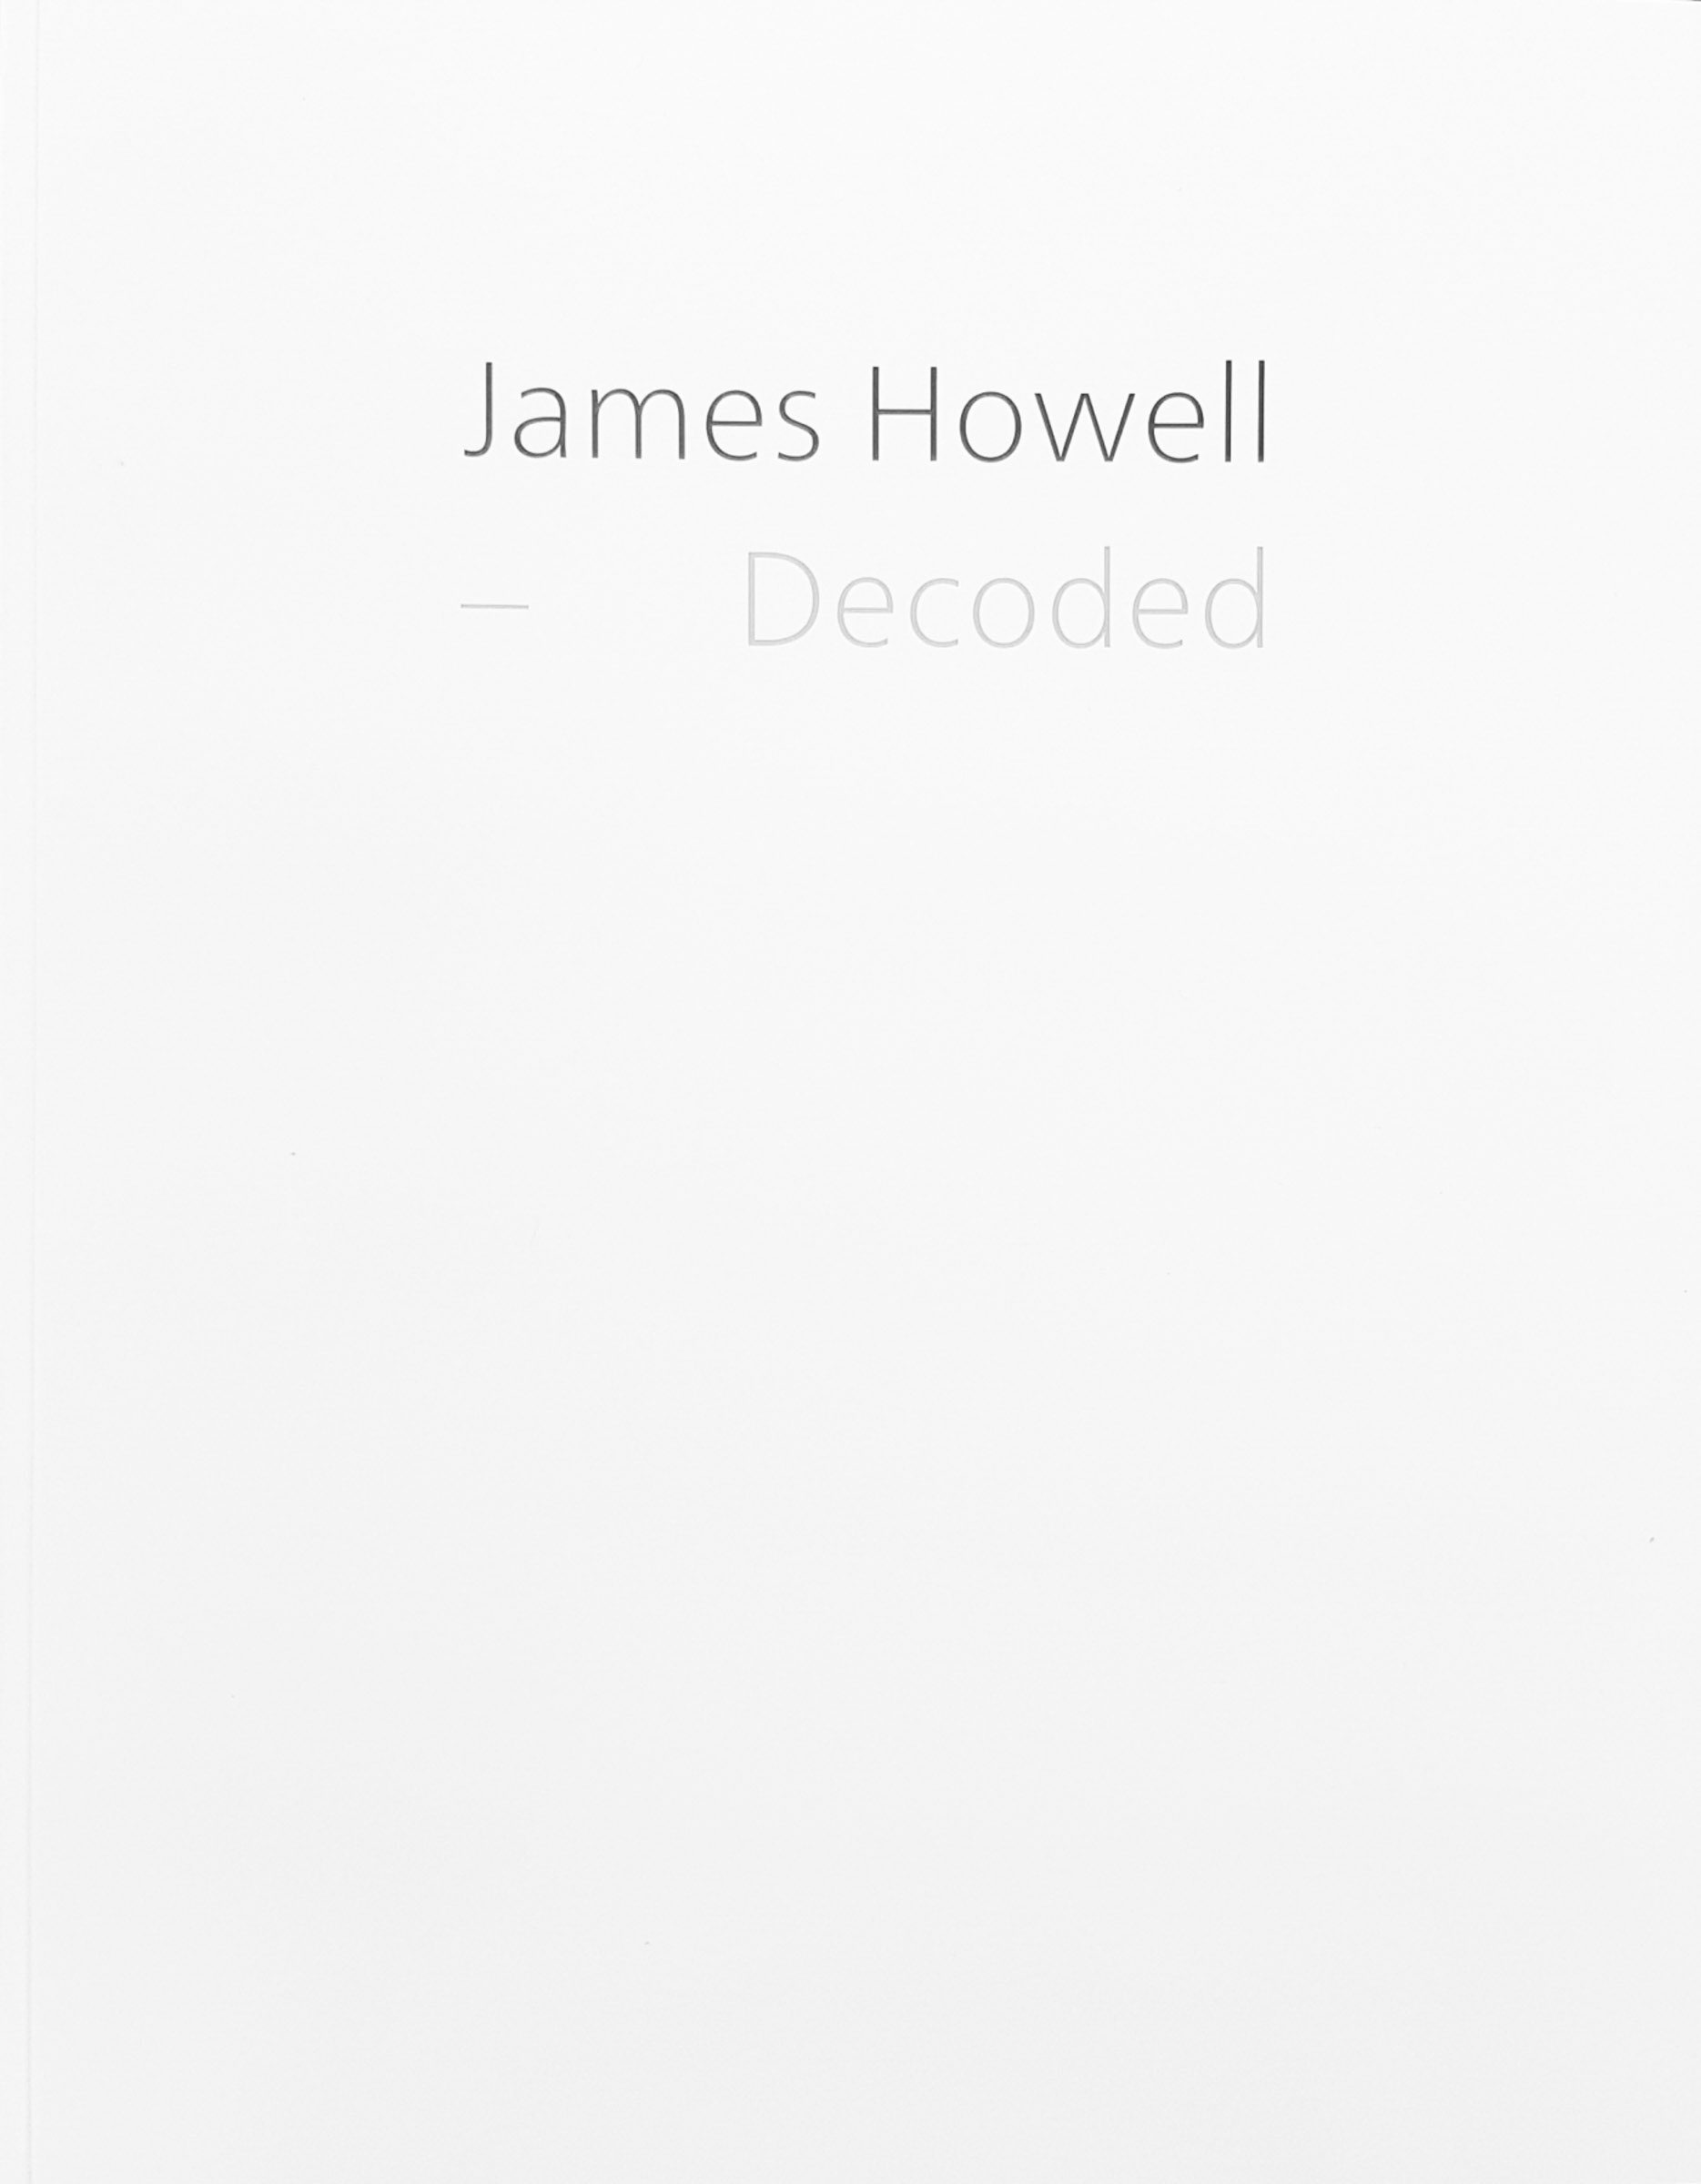 Book no. 7: JAMES HOWELL, Decoded